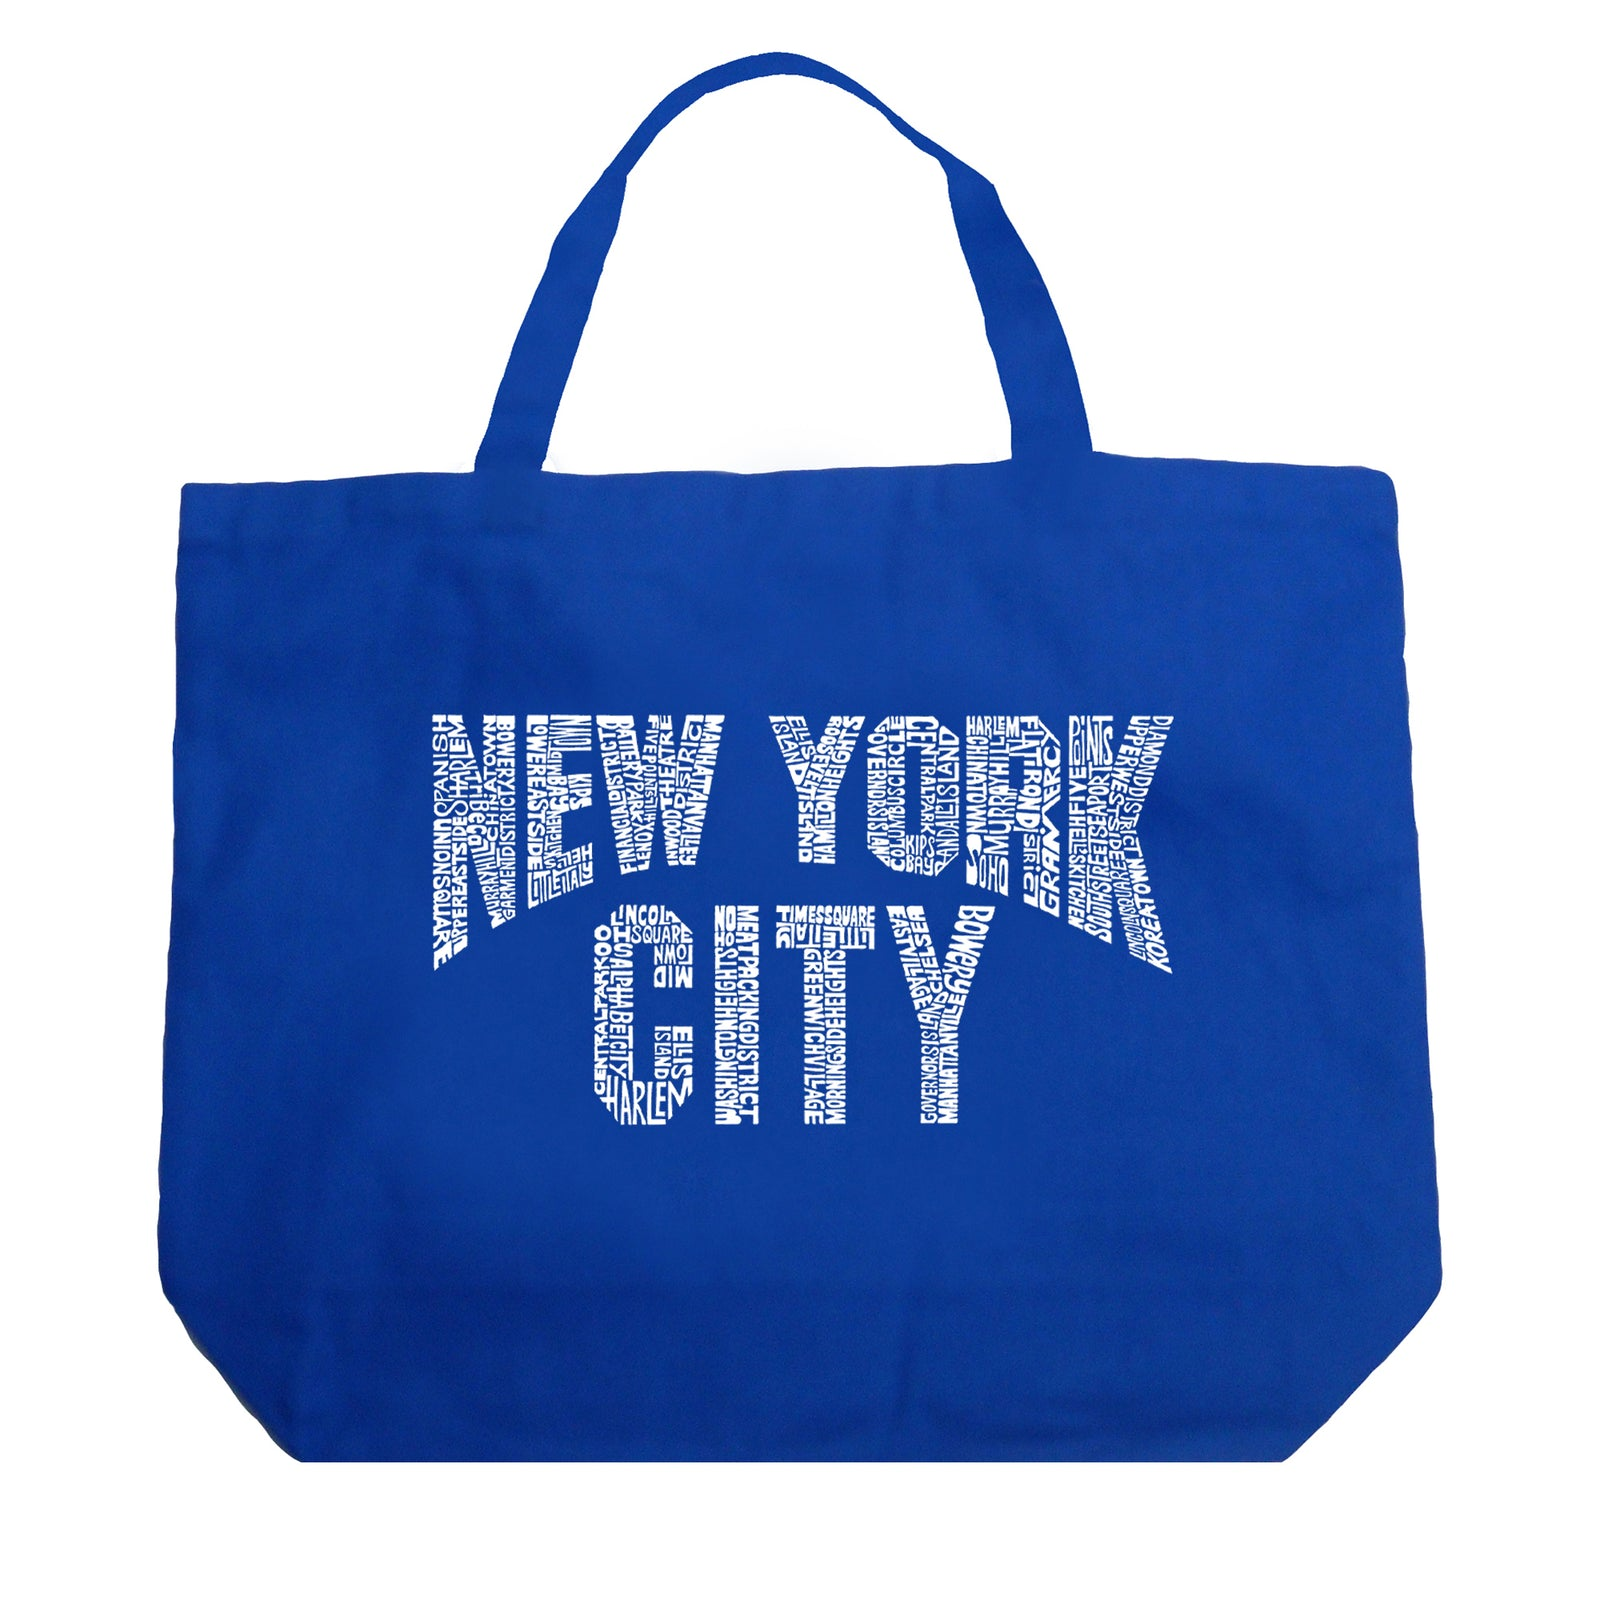 Large Tote Bag - NYC NEIGHBORHOODS